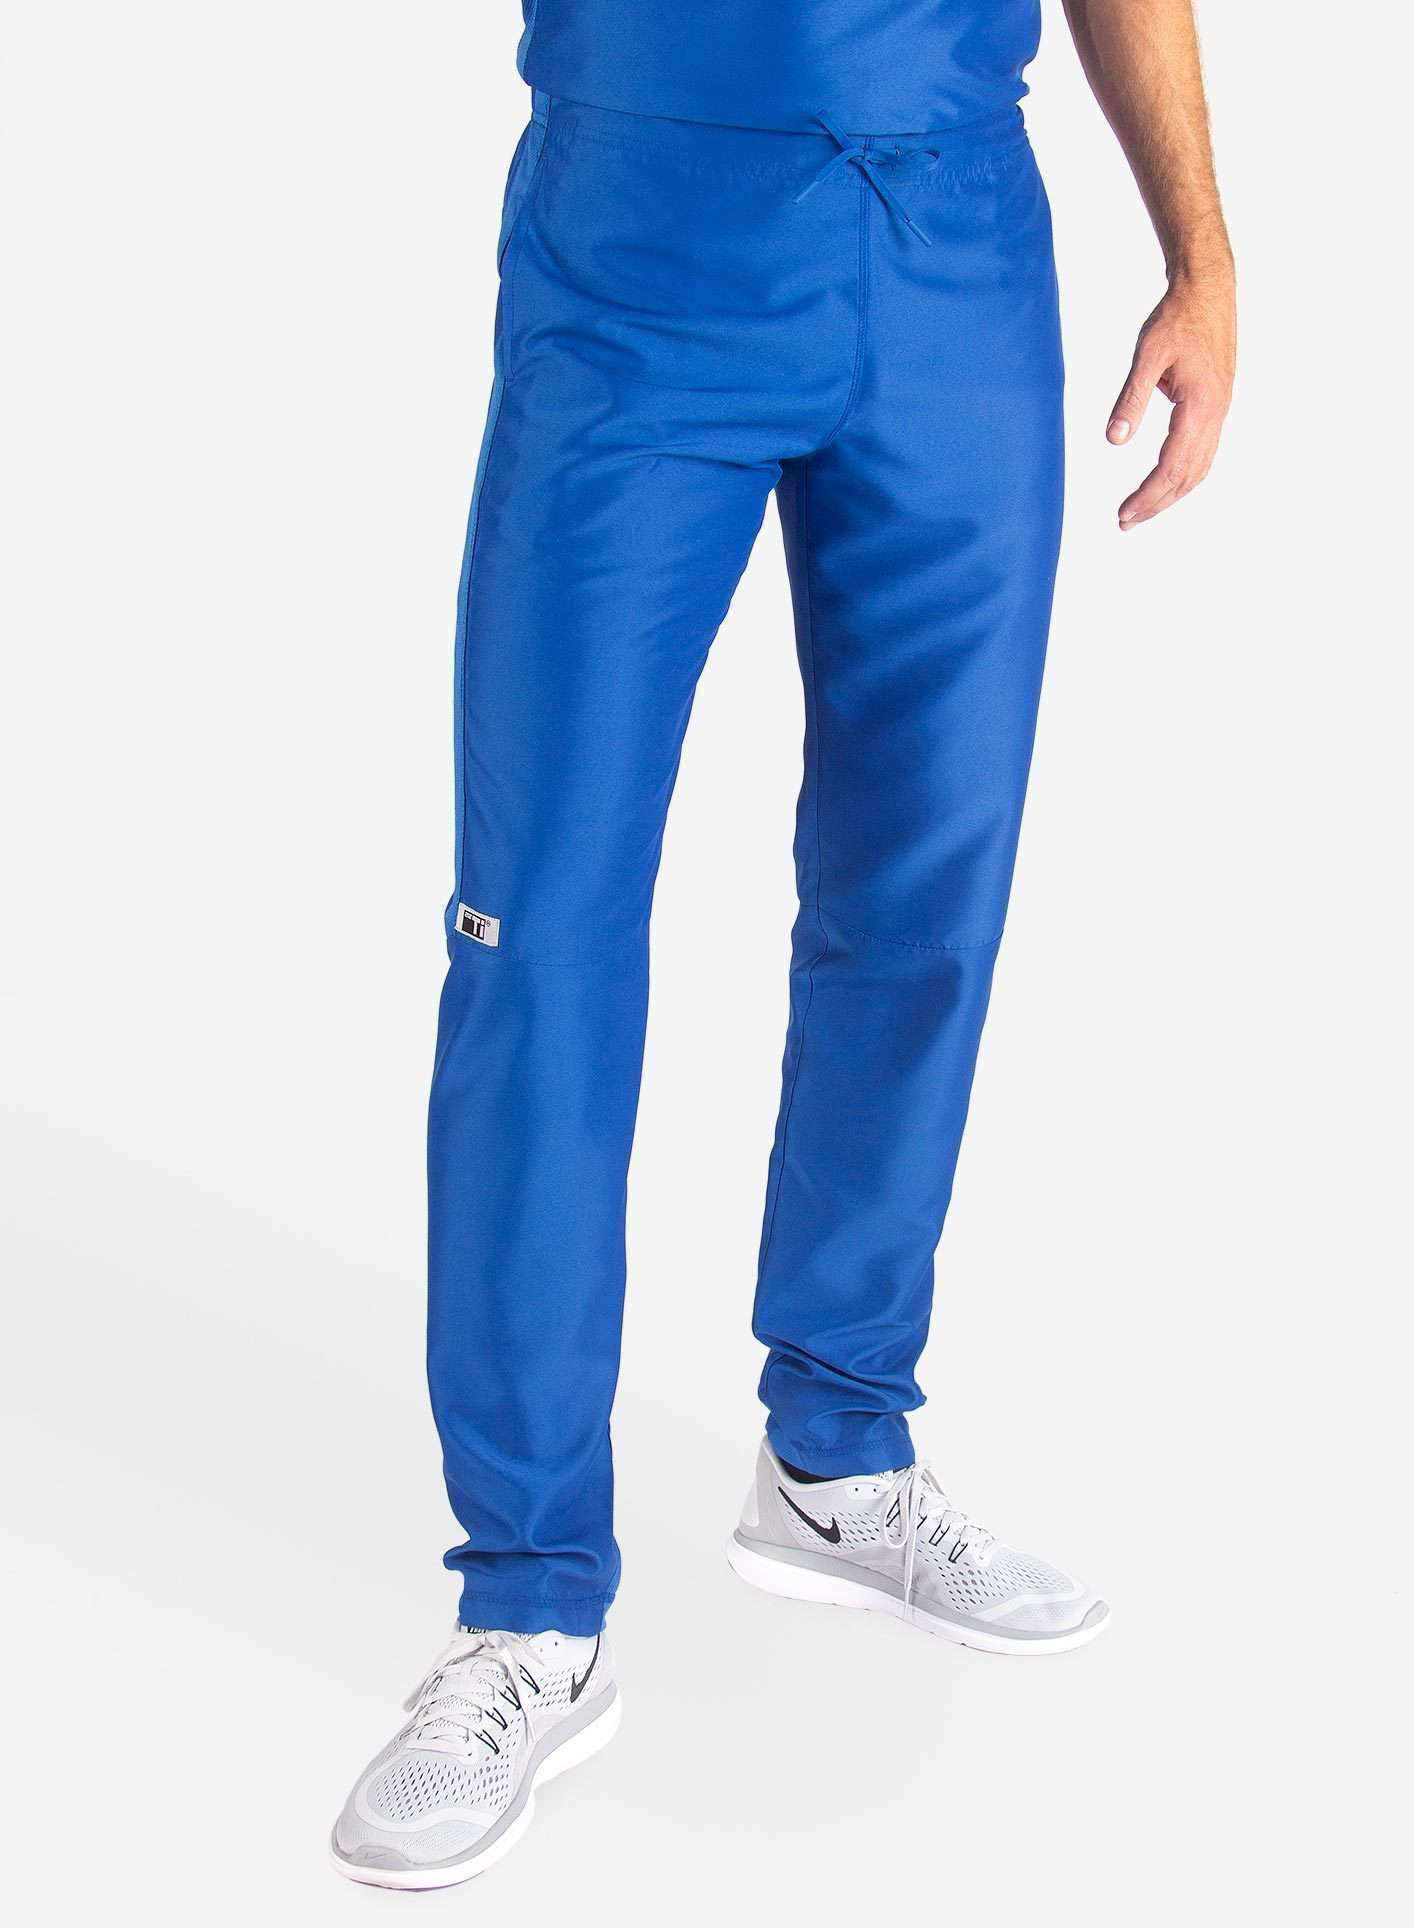 Men's Slim Fit Scrub Pants in Royal Blue